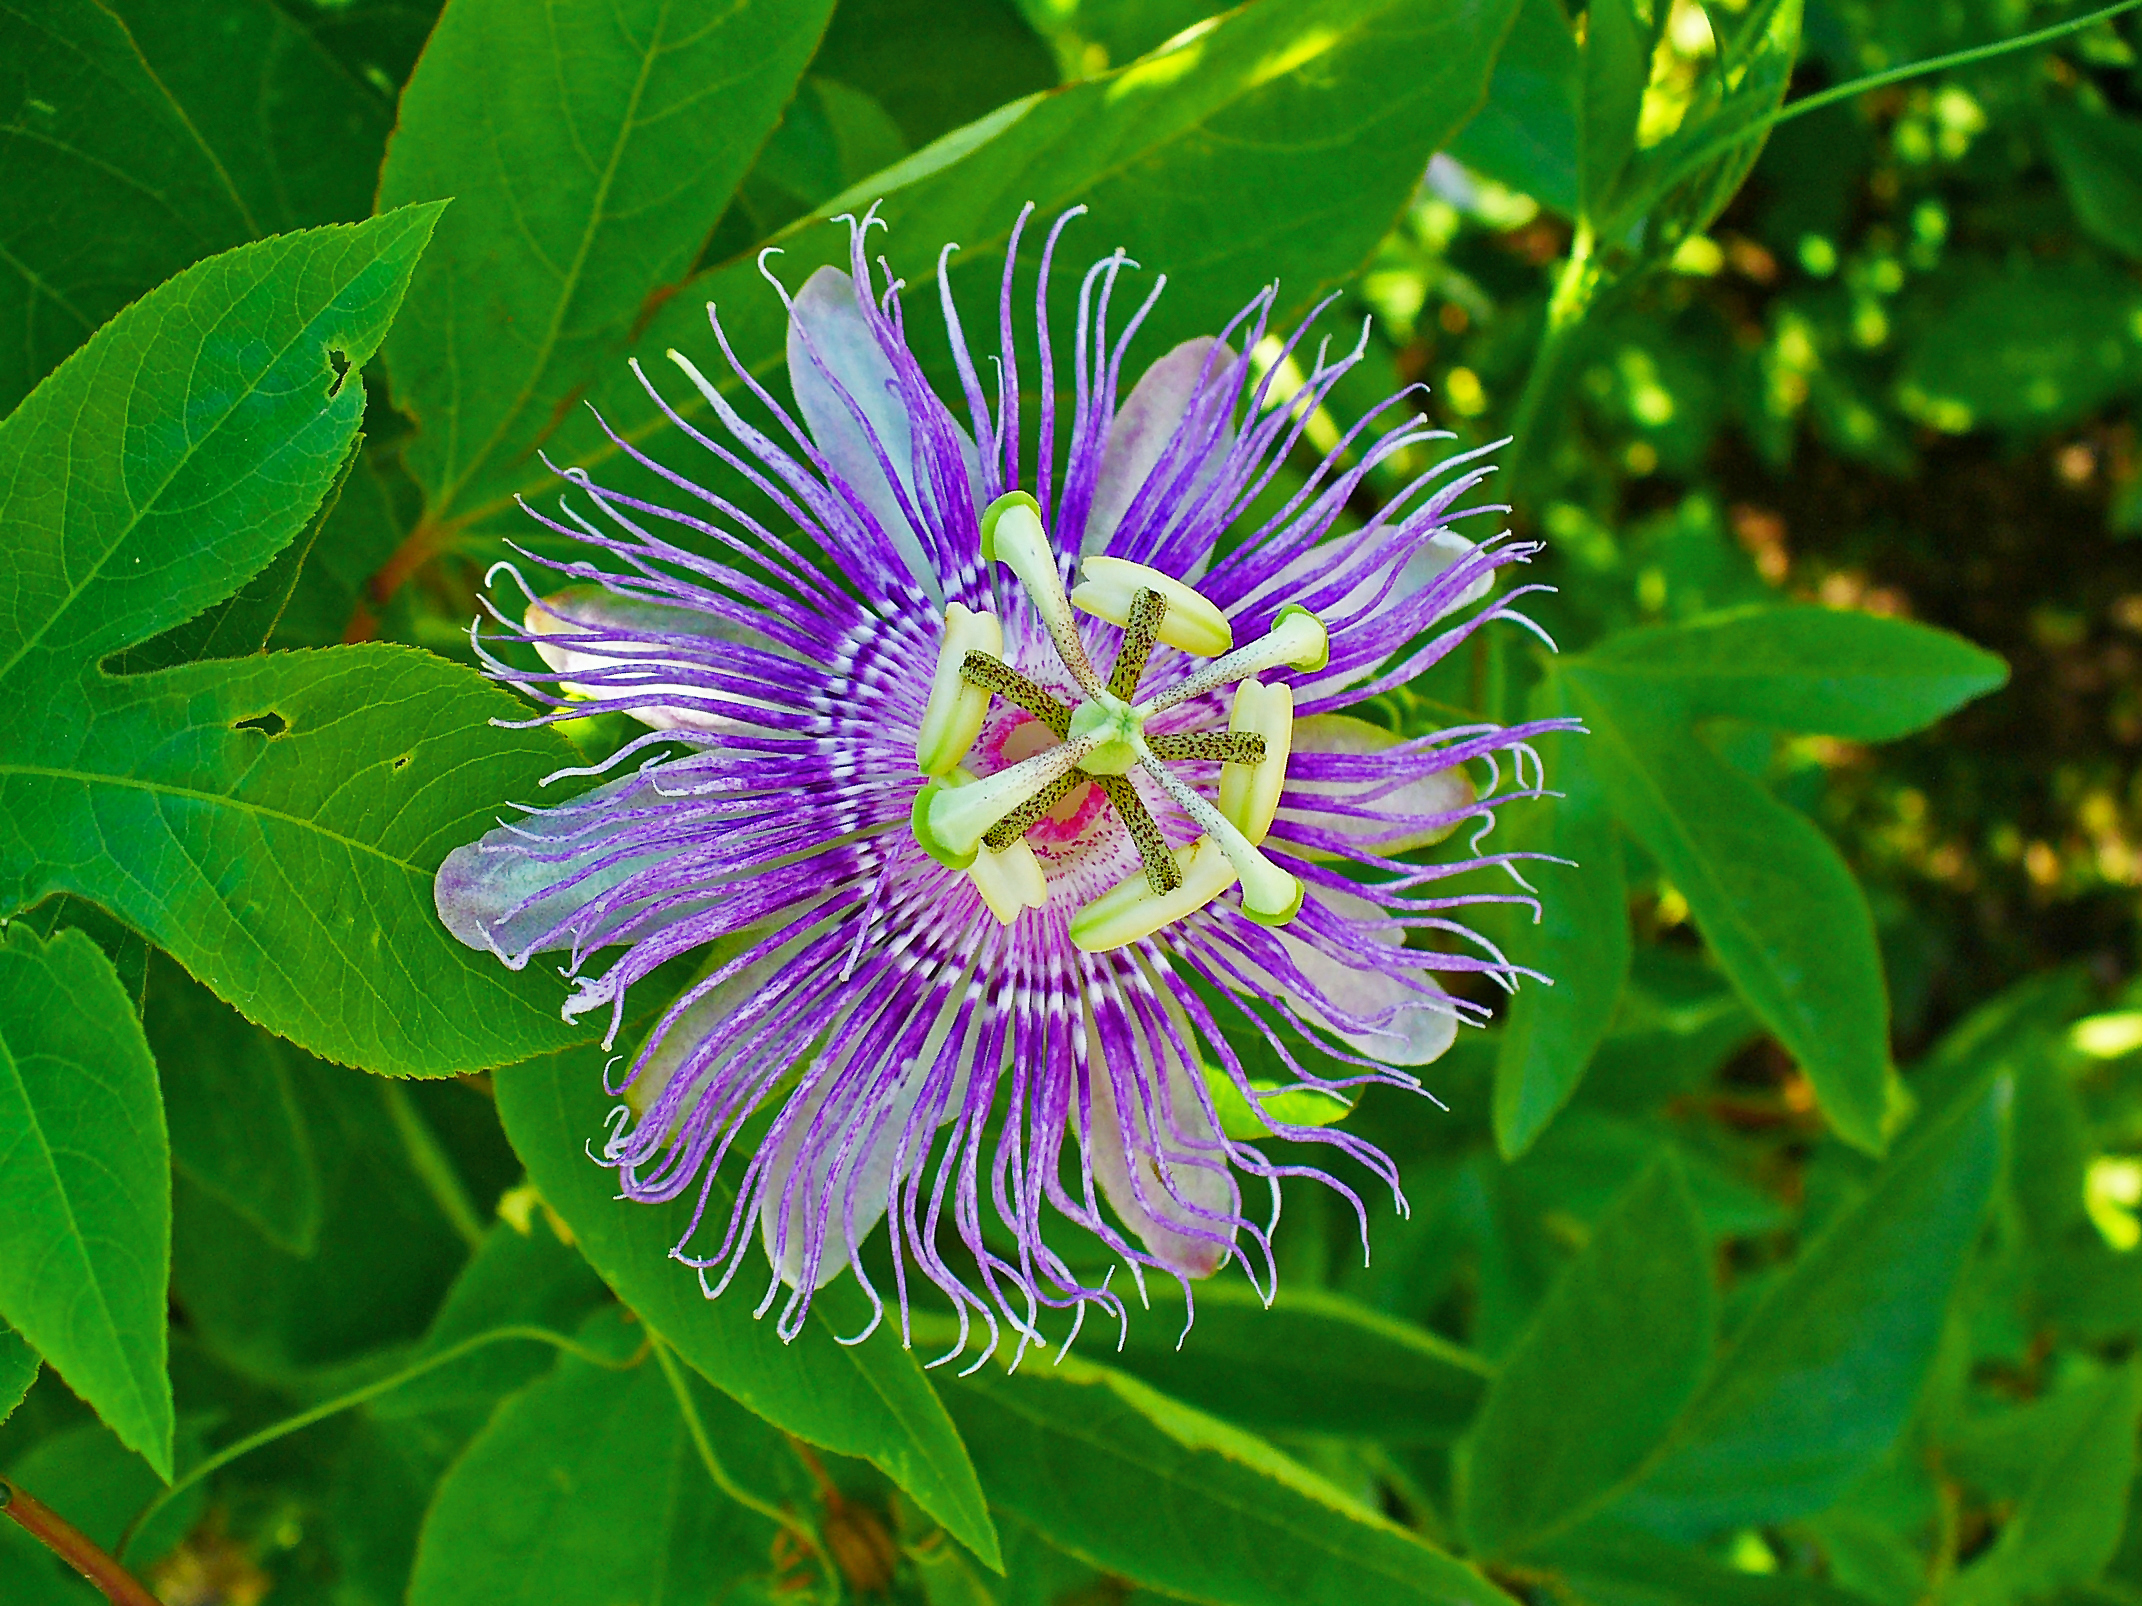 datei passiflora incarnata 002 jpg wikipedia. Black Bedroom Furniture Sets. Home Design Ideas